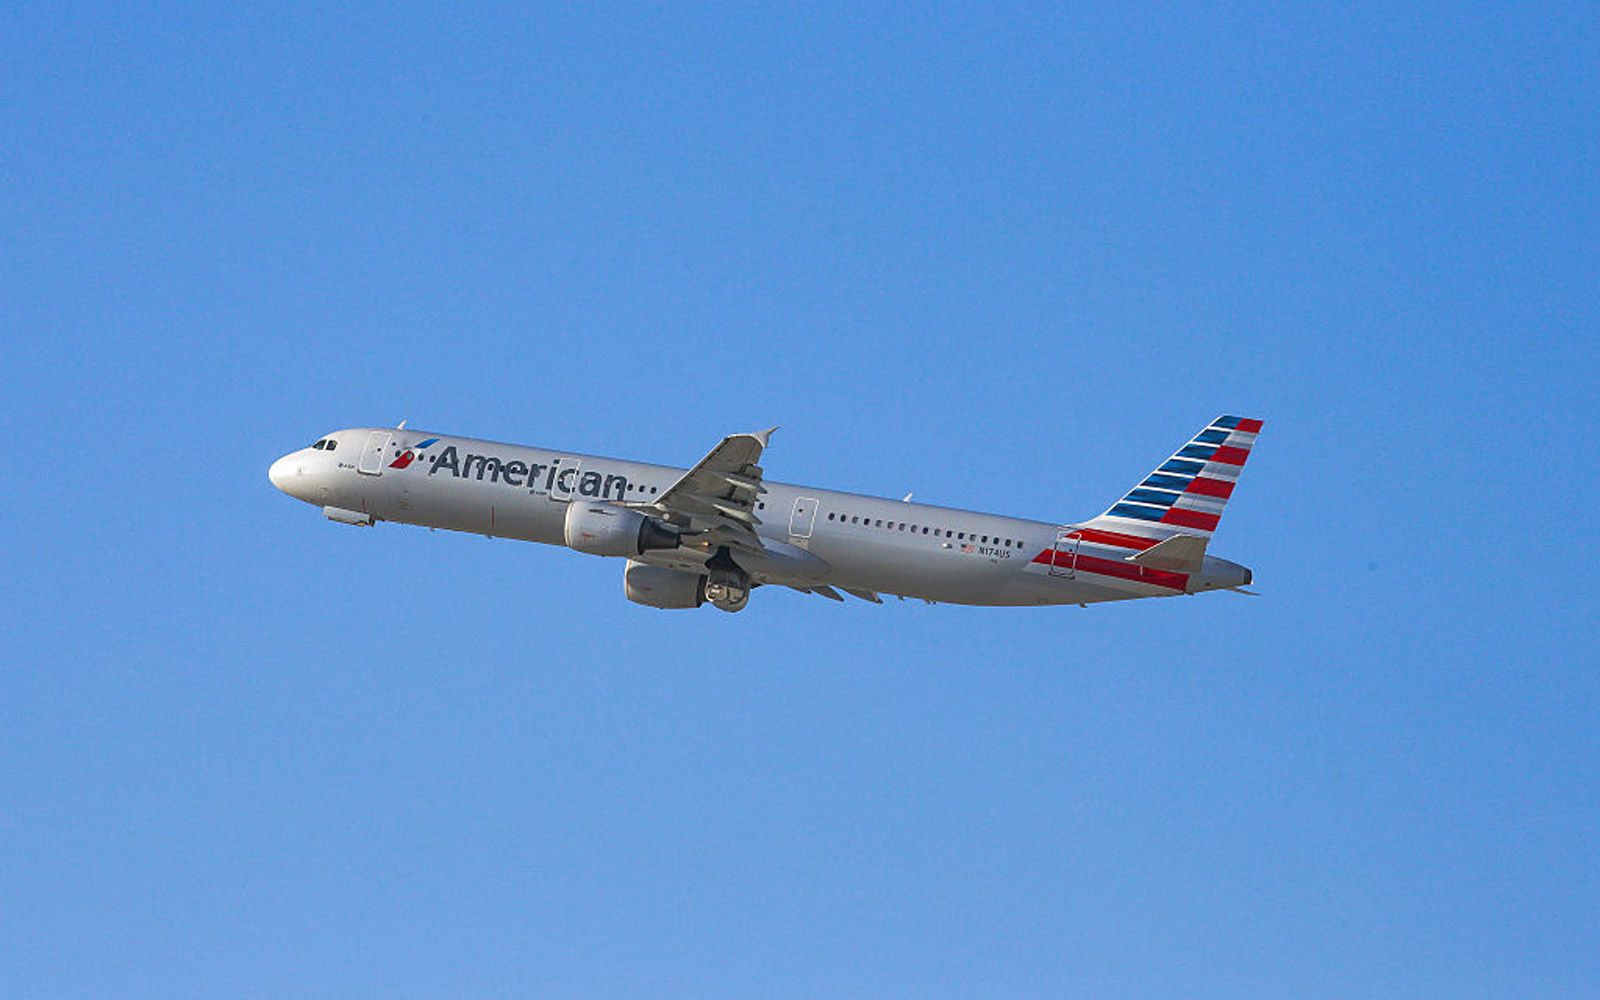 Severe Turbulence on American Airlines Flight Leaves 10 Injured